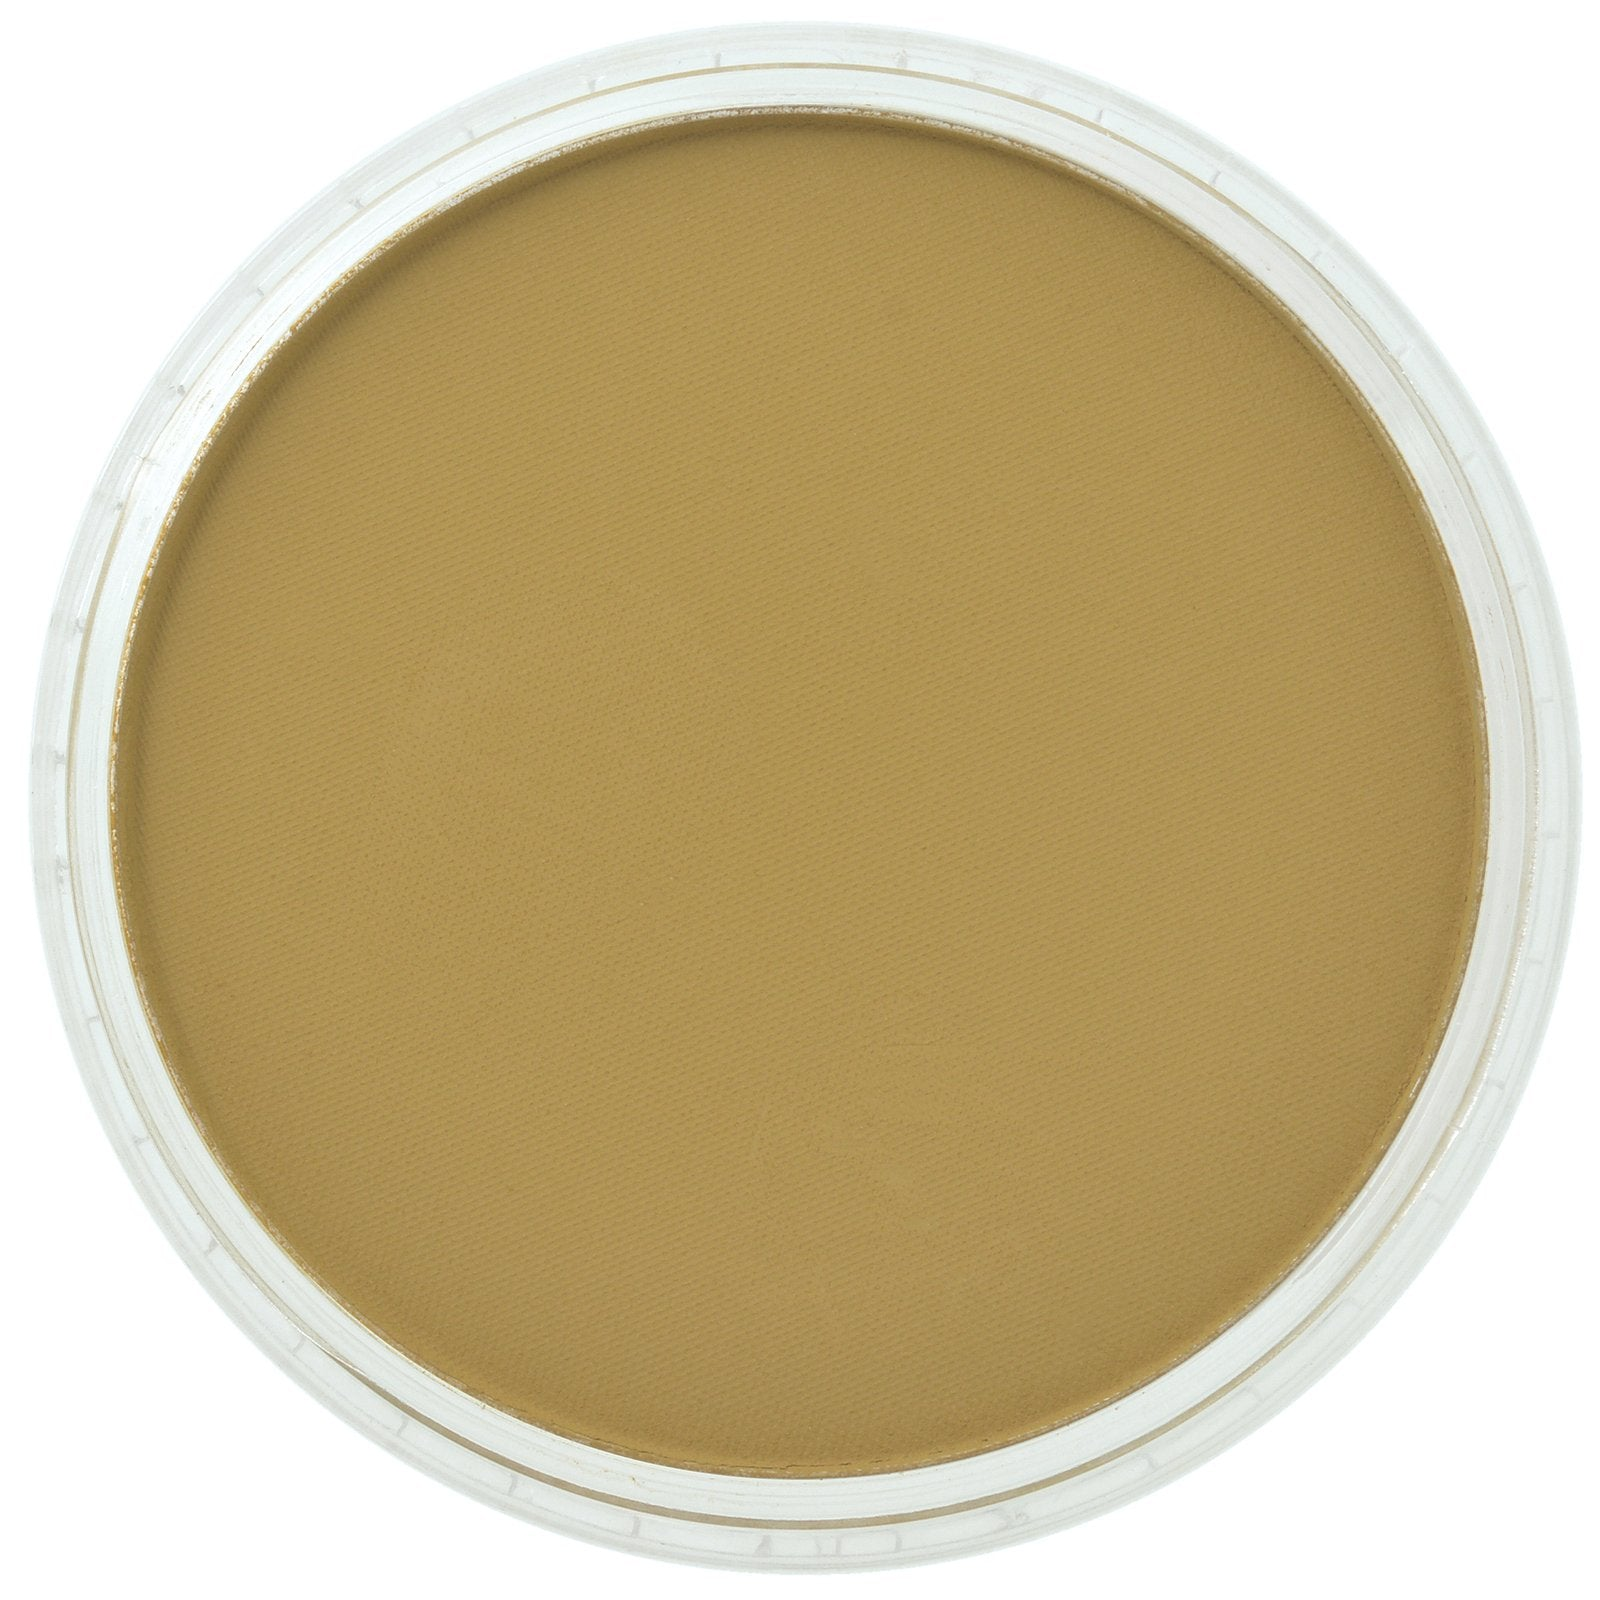 PanPastel - 270.3 YELLOW OCHRE SHADE